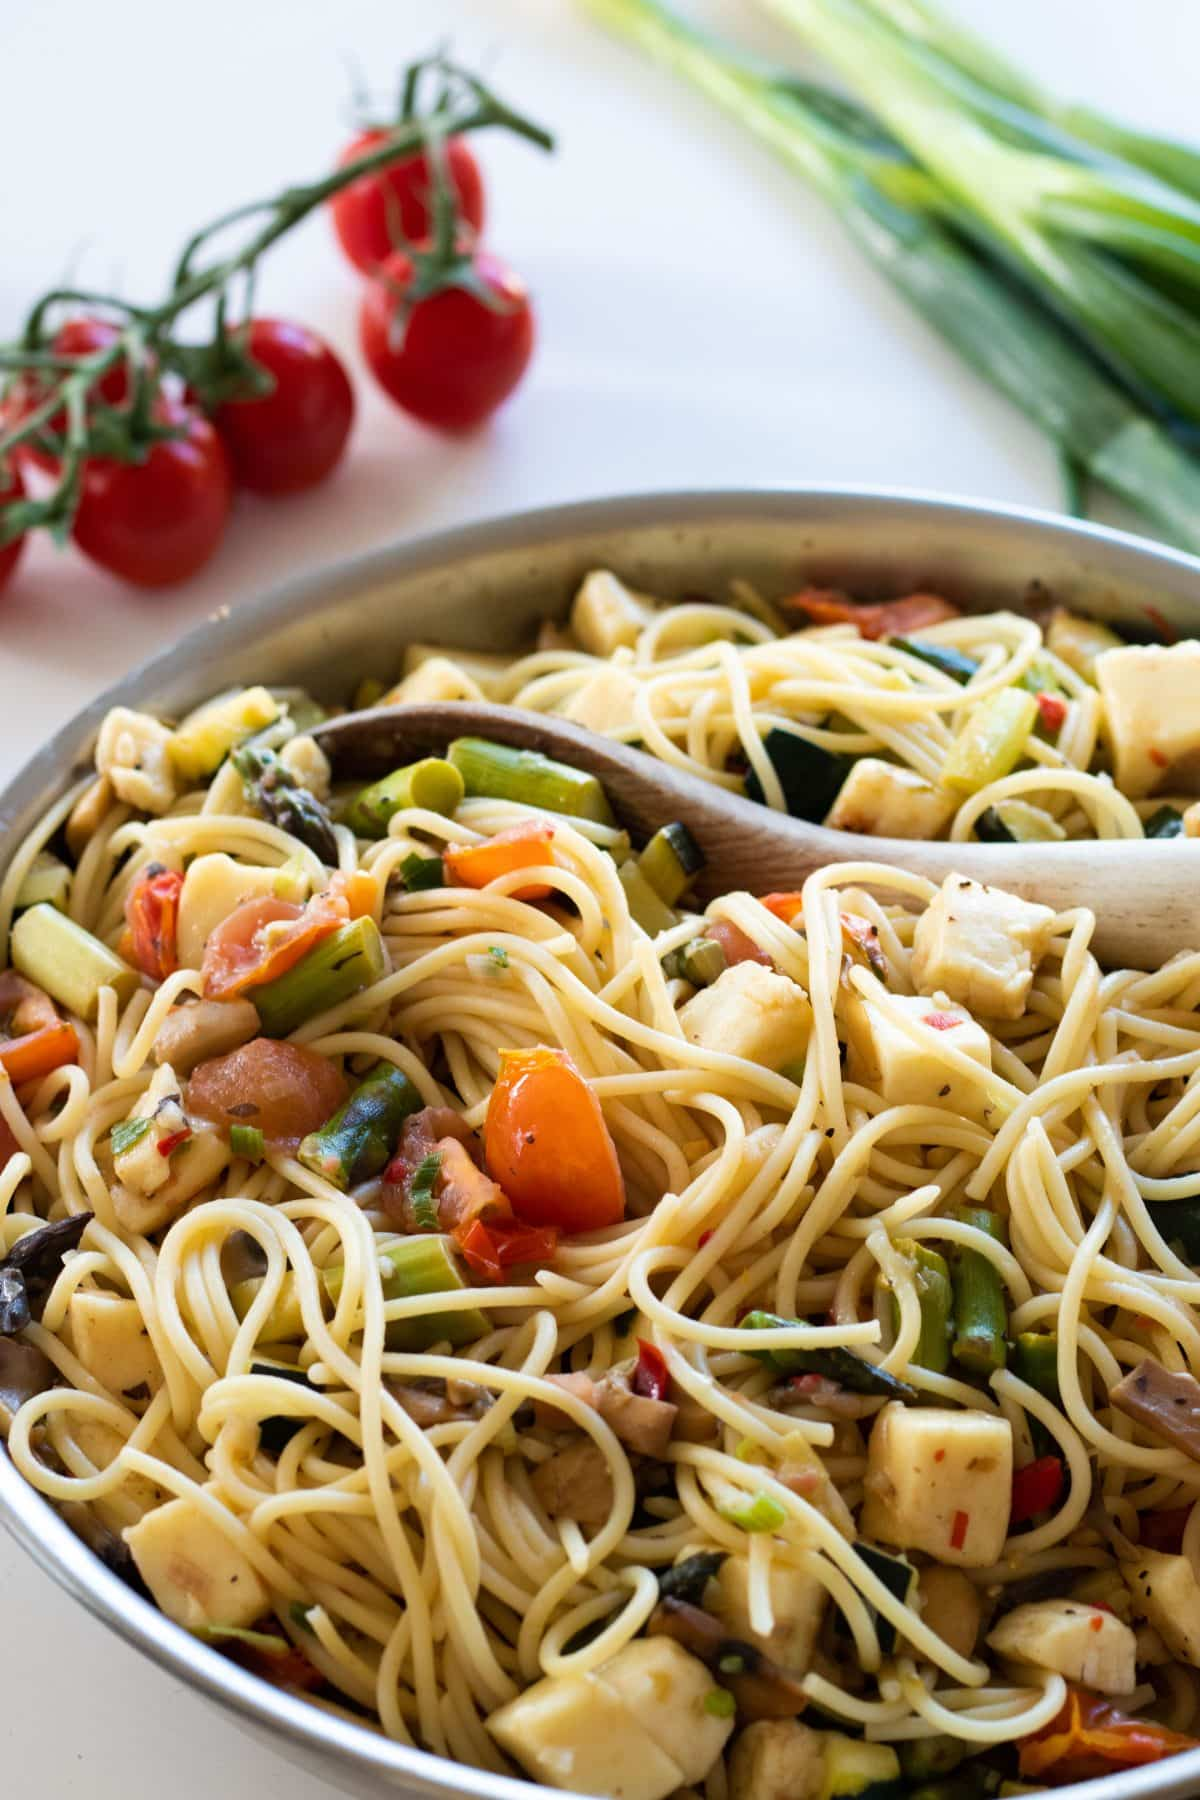 sideview of pasta primavera in a pan with a wooden spoon, cherry tomatoes and spring onions in the background